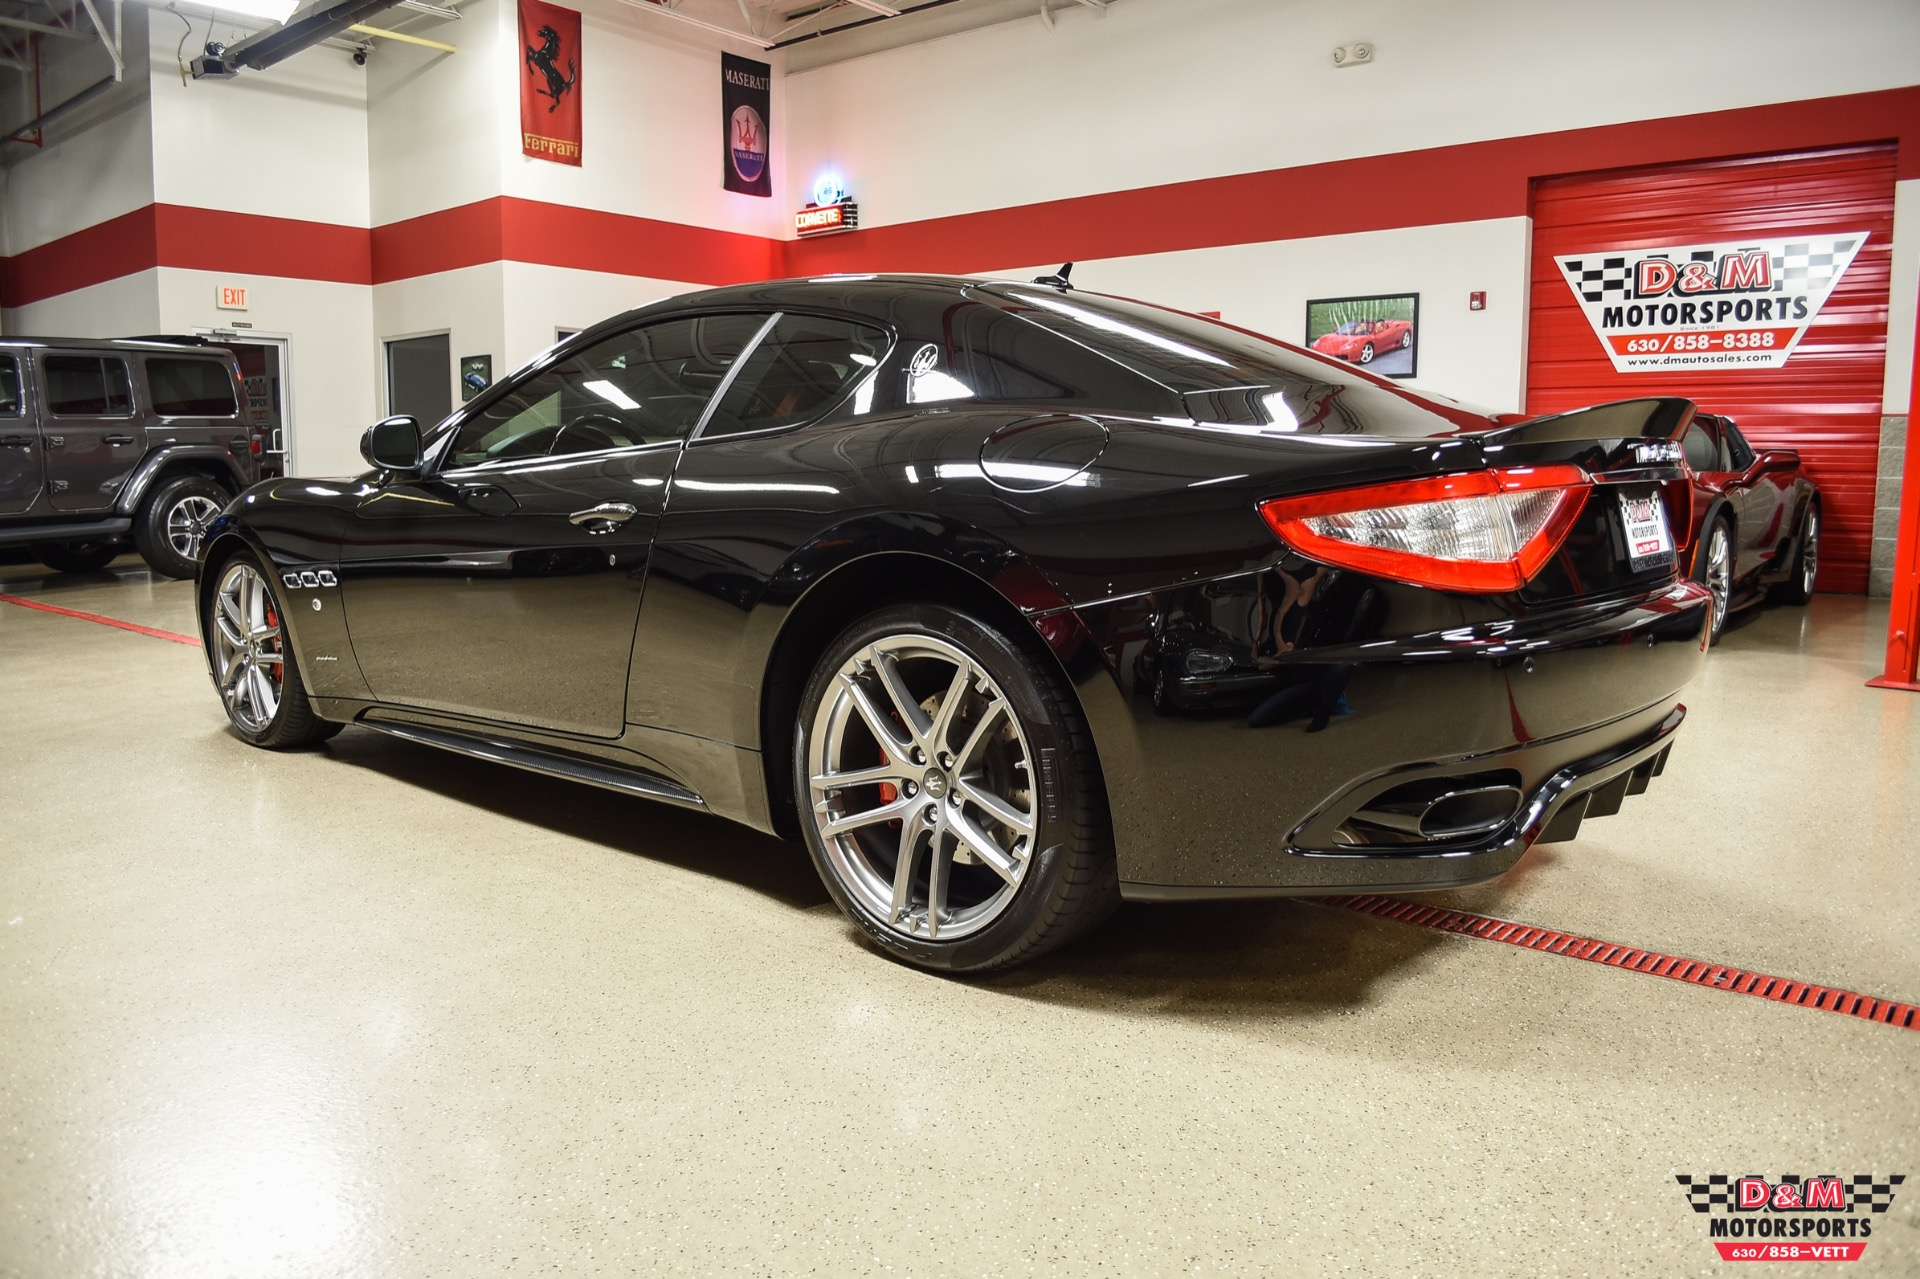 Used 2012 Maserati GranTurismo MC Sportline Coupe | Glen Ellyn, IL